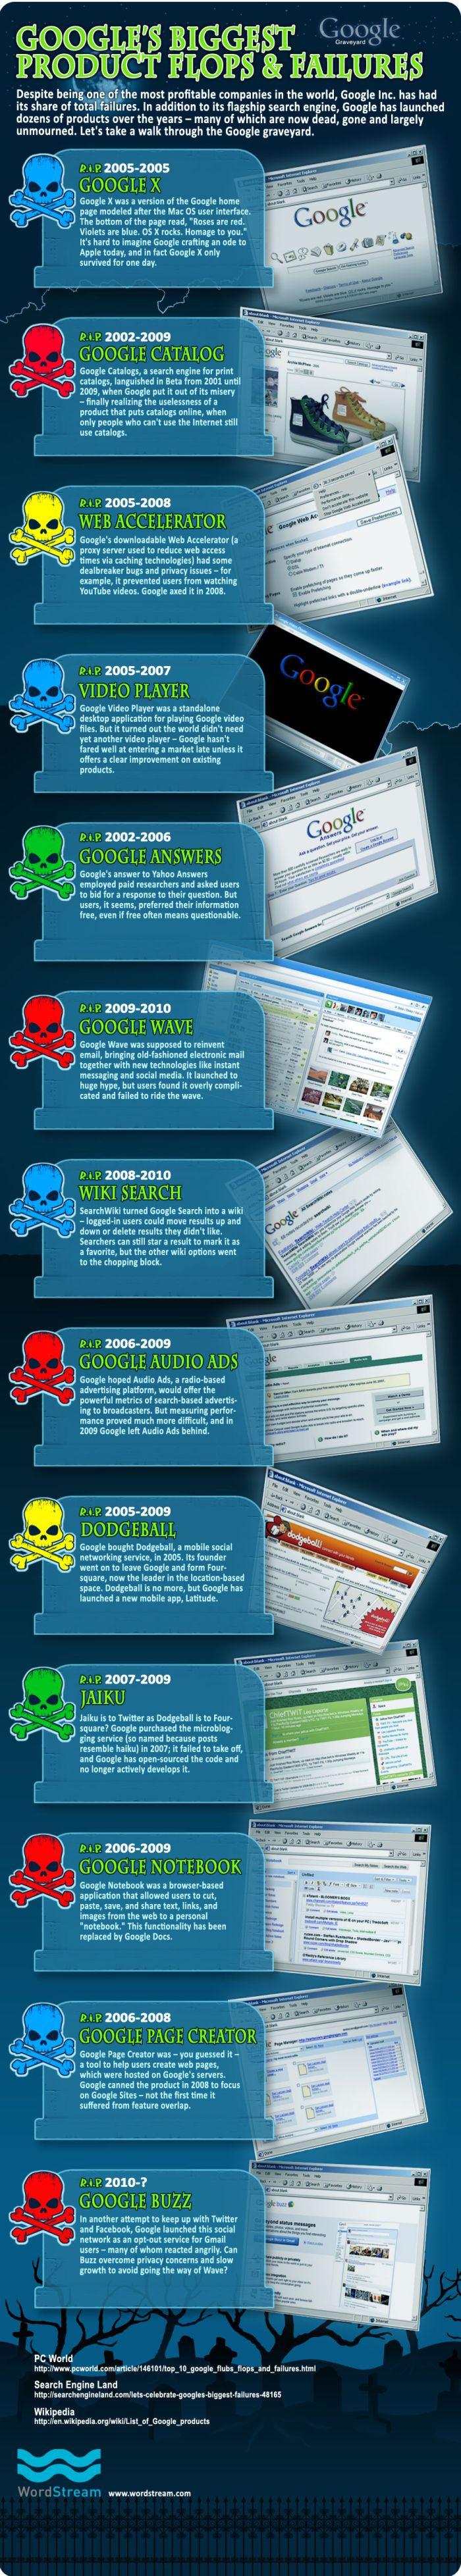 Google's Biggest Product Flops and Failures (infographic)